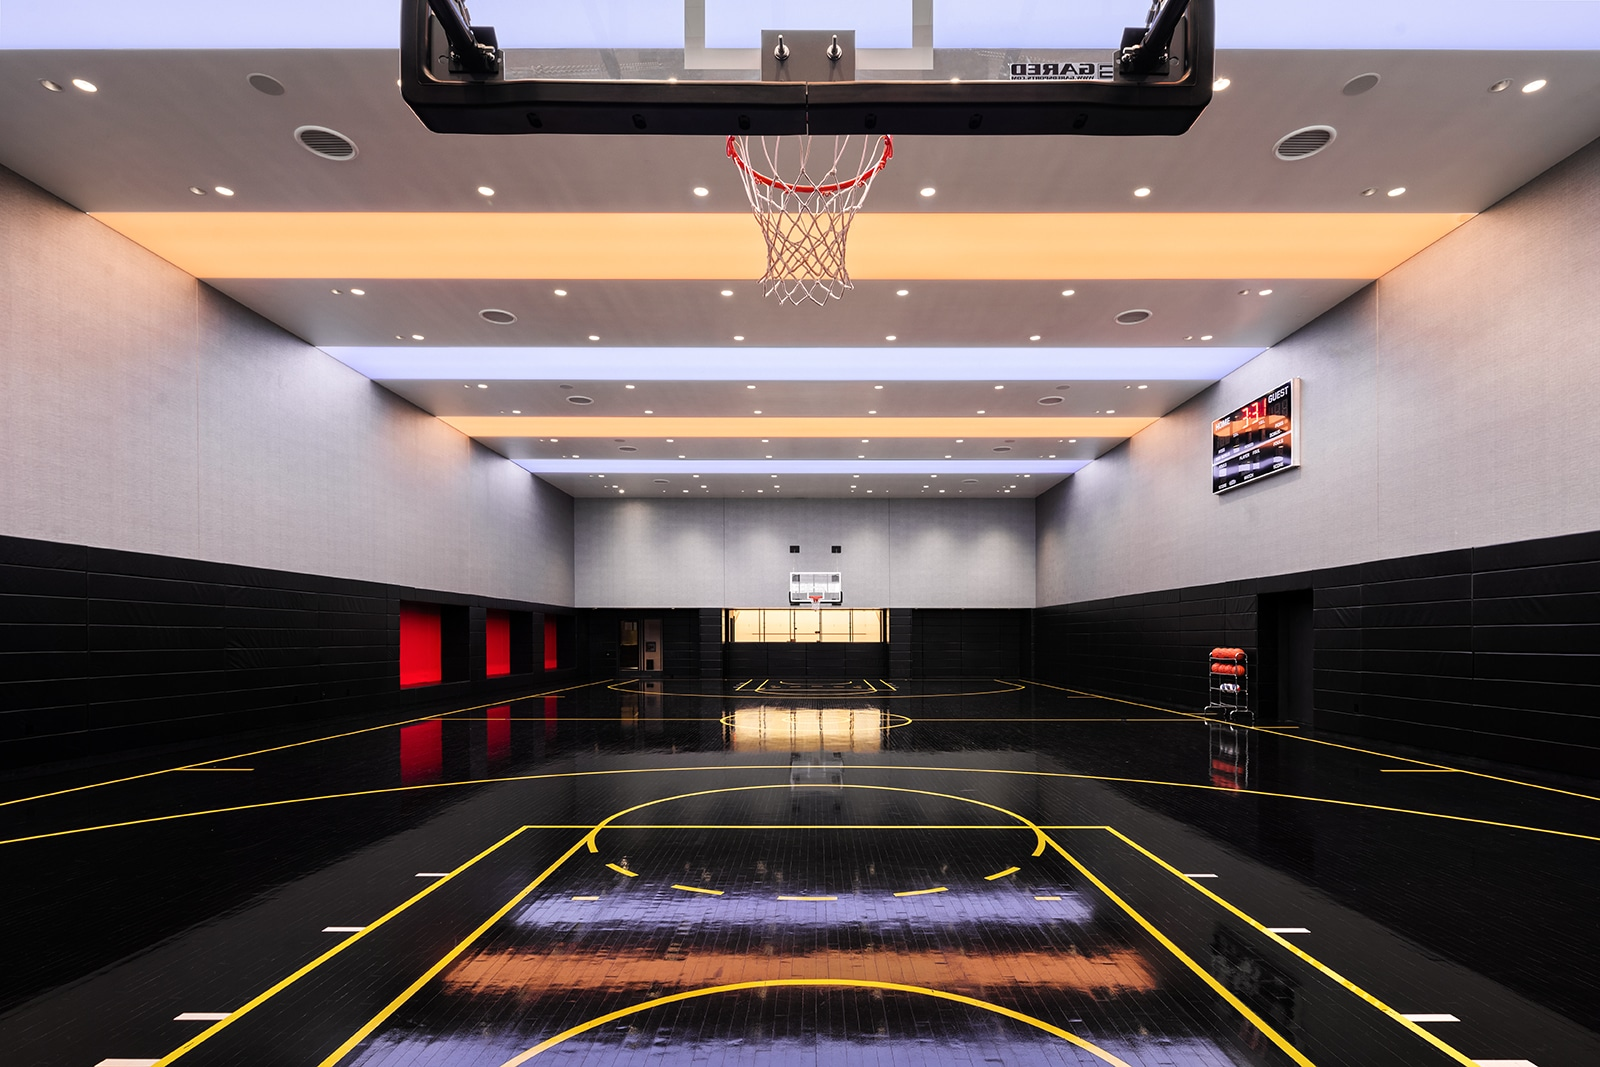 Full sized basketball court at One Manhattan Square condos in New York City. Black court with two hoops and scoreboard.